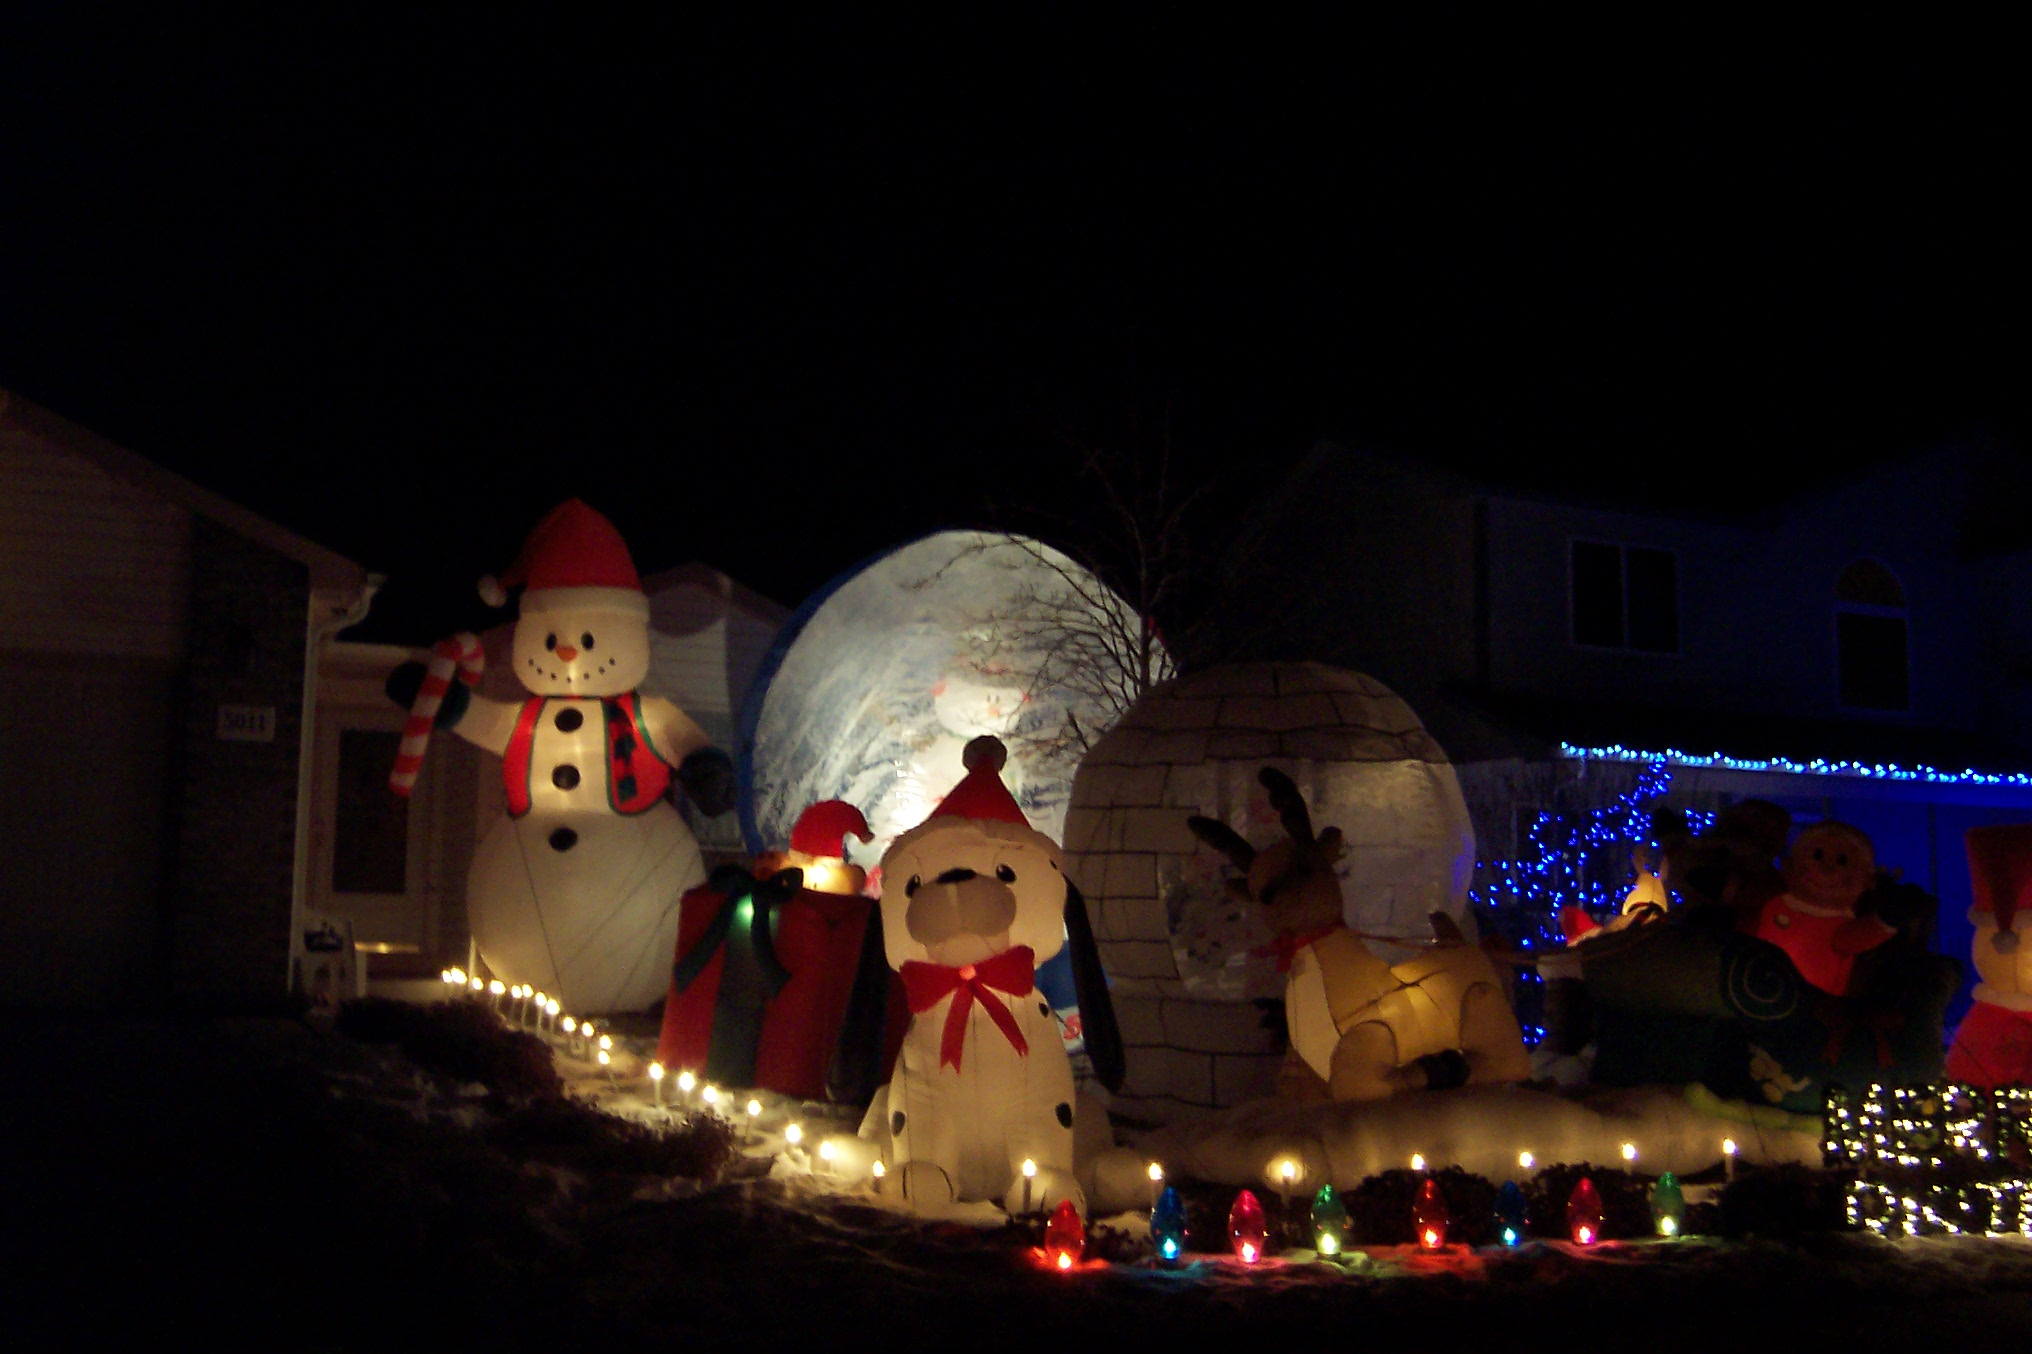 Christmas Lights – Class or Crass? The Good, the Bad and the Ugly ...